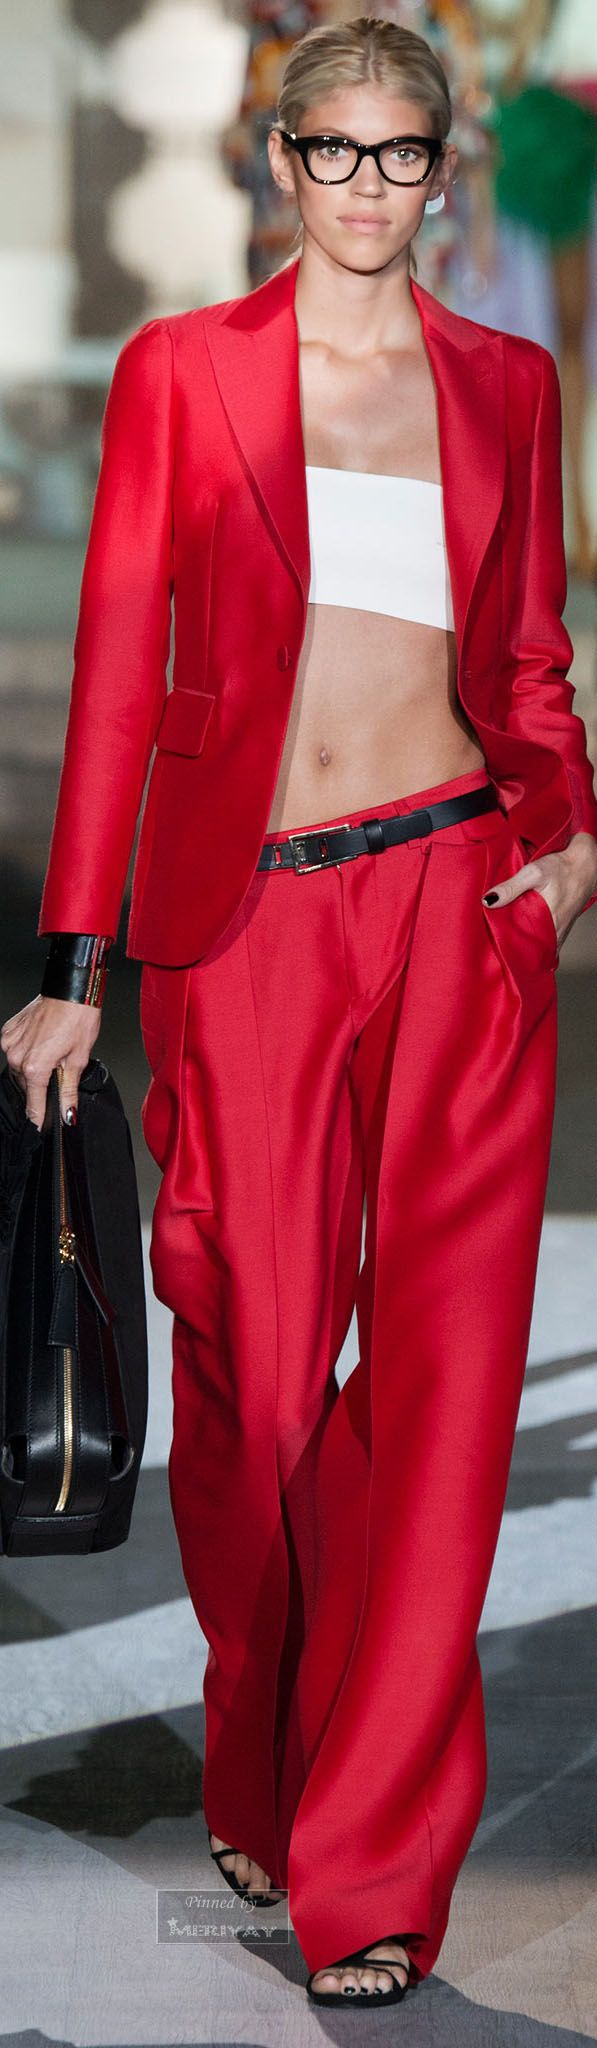 Dsquared² red womens pant suit JEWEL TONE STYLE #UNIQUE_WOMENS_FASHION